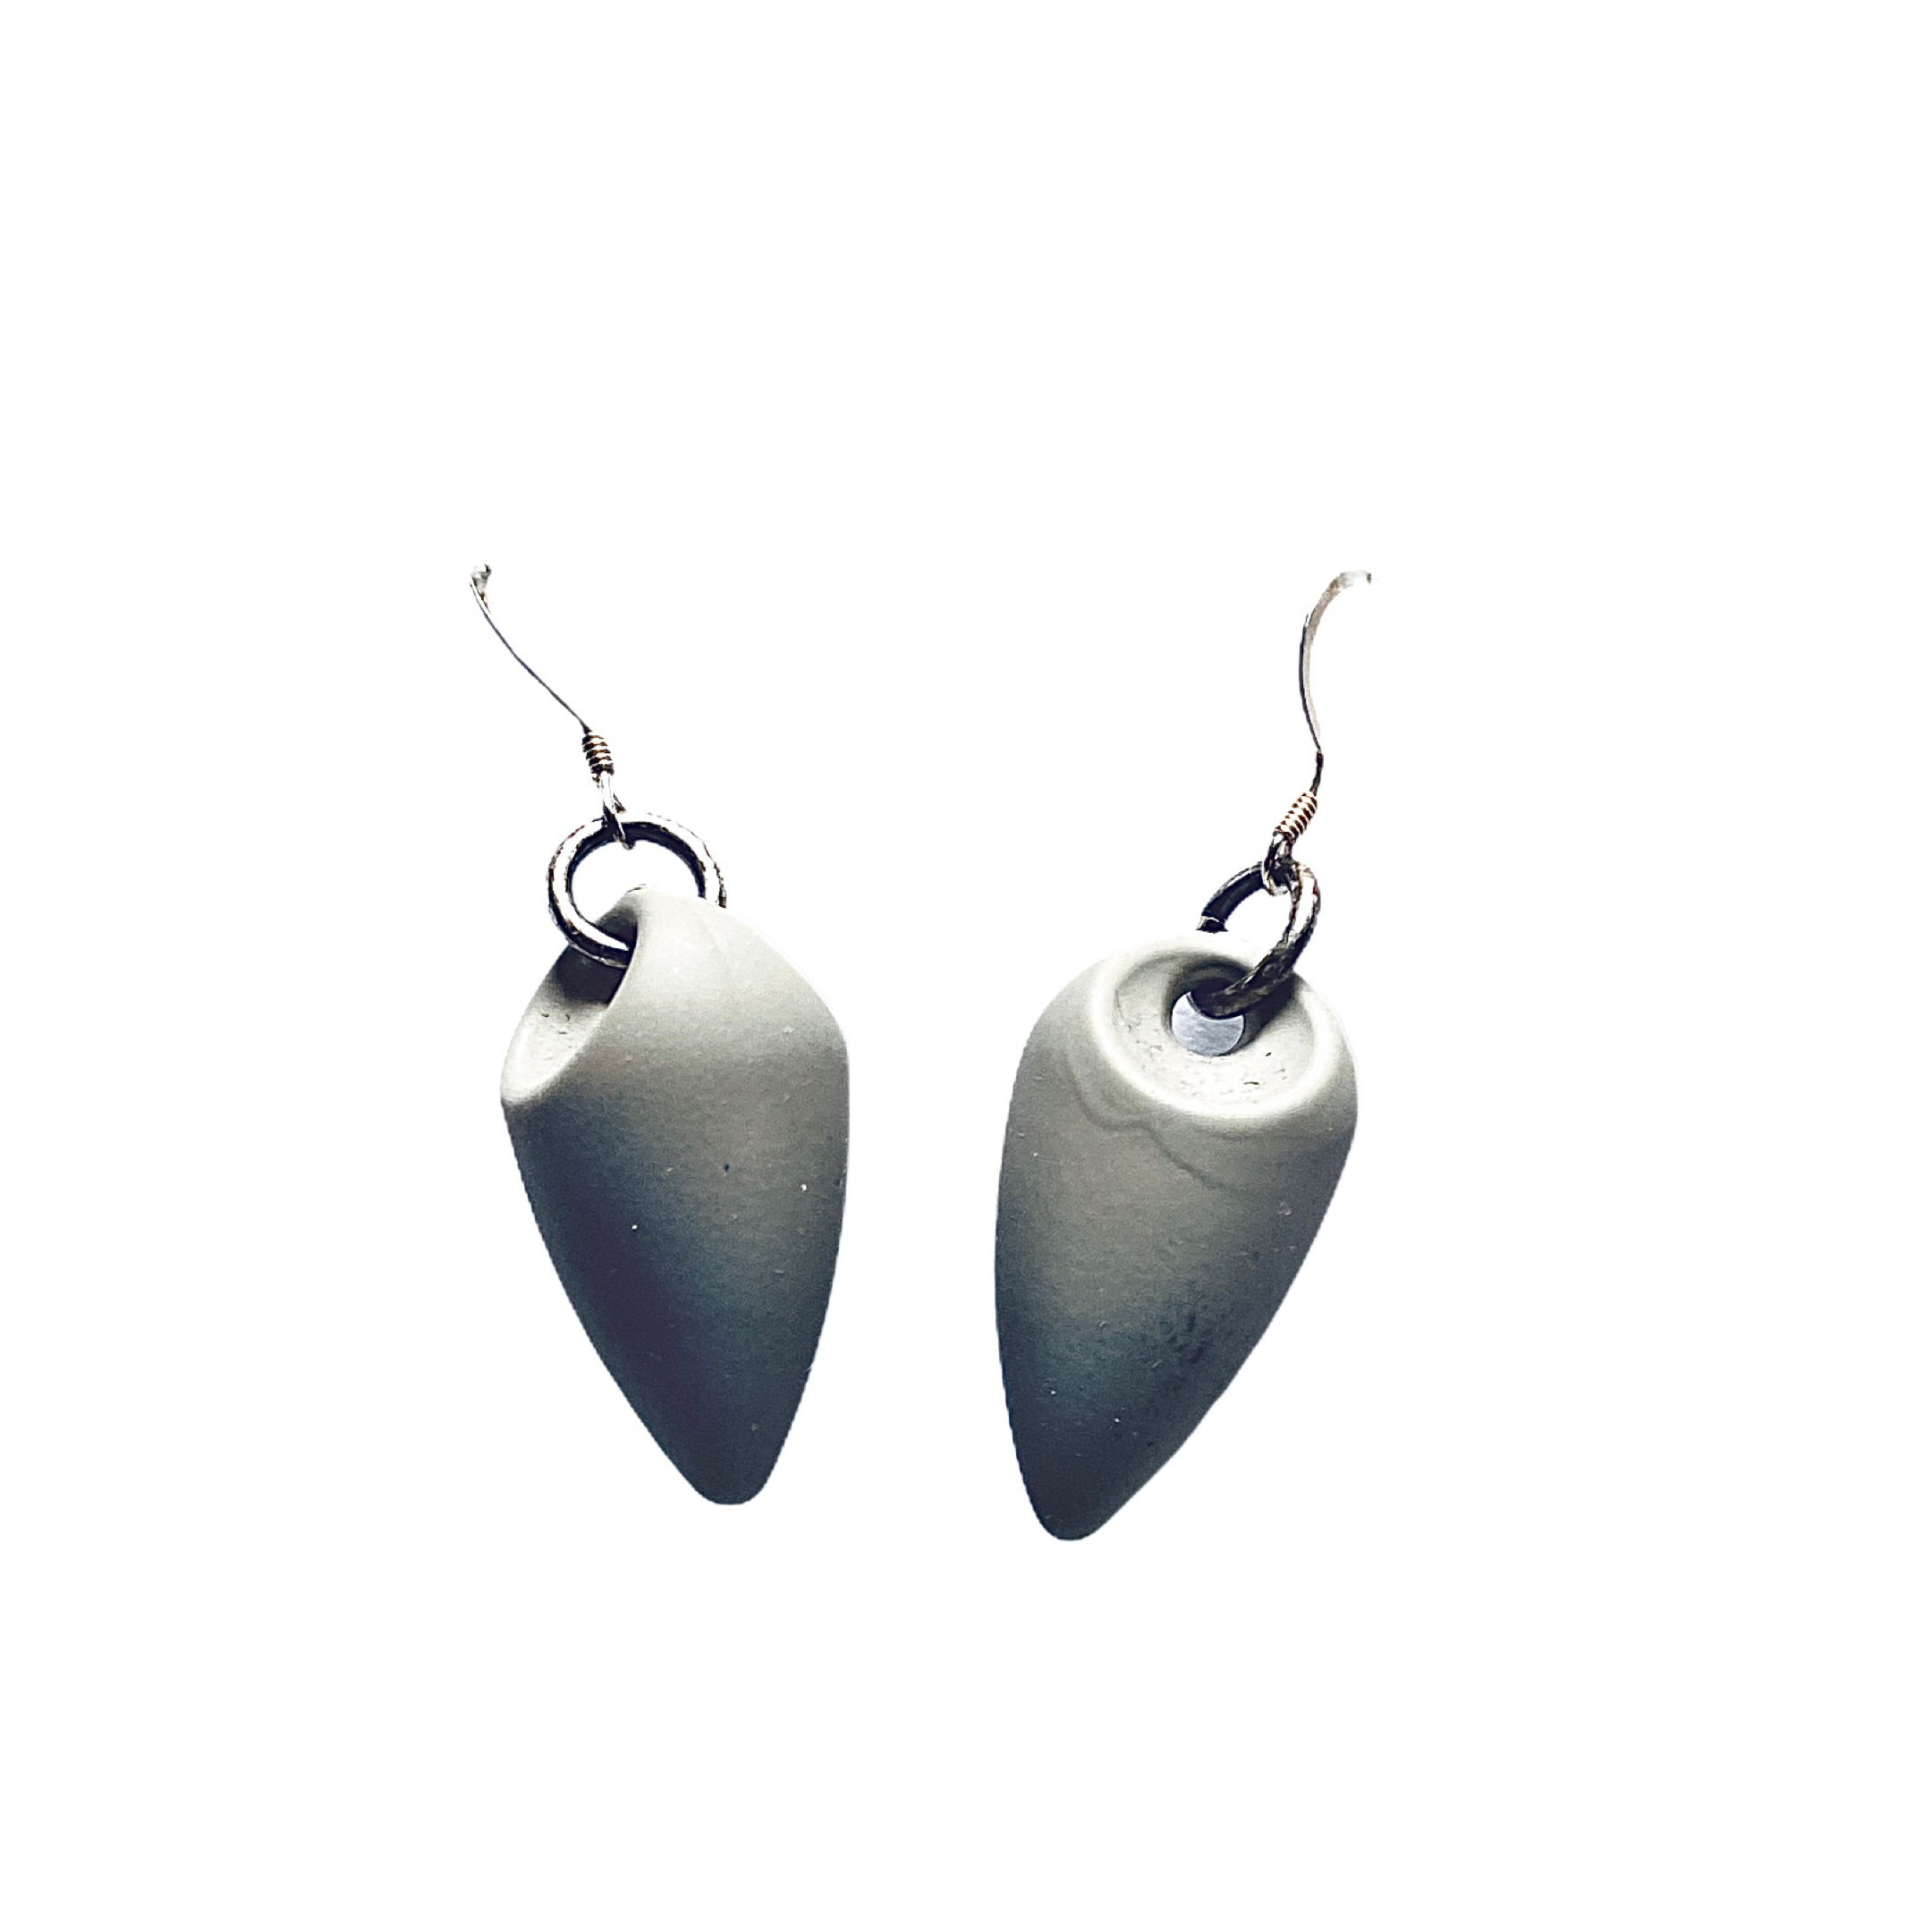 Grey Recycled Resin Earrings - Irit Sorokin Designs Canadian handmade jewelry